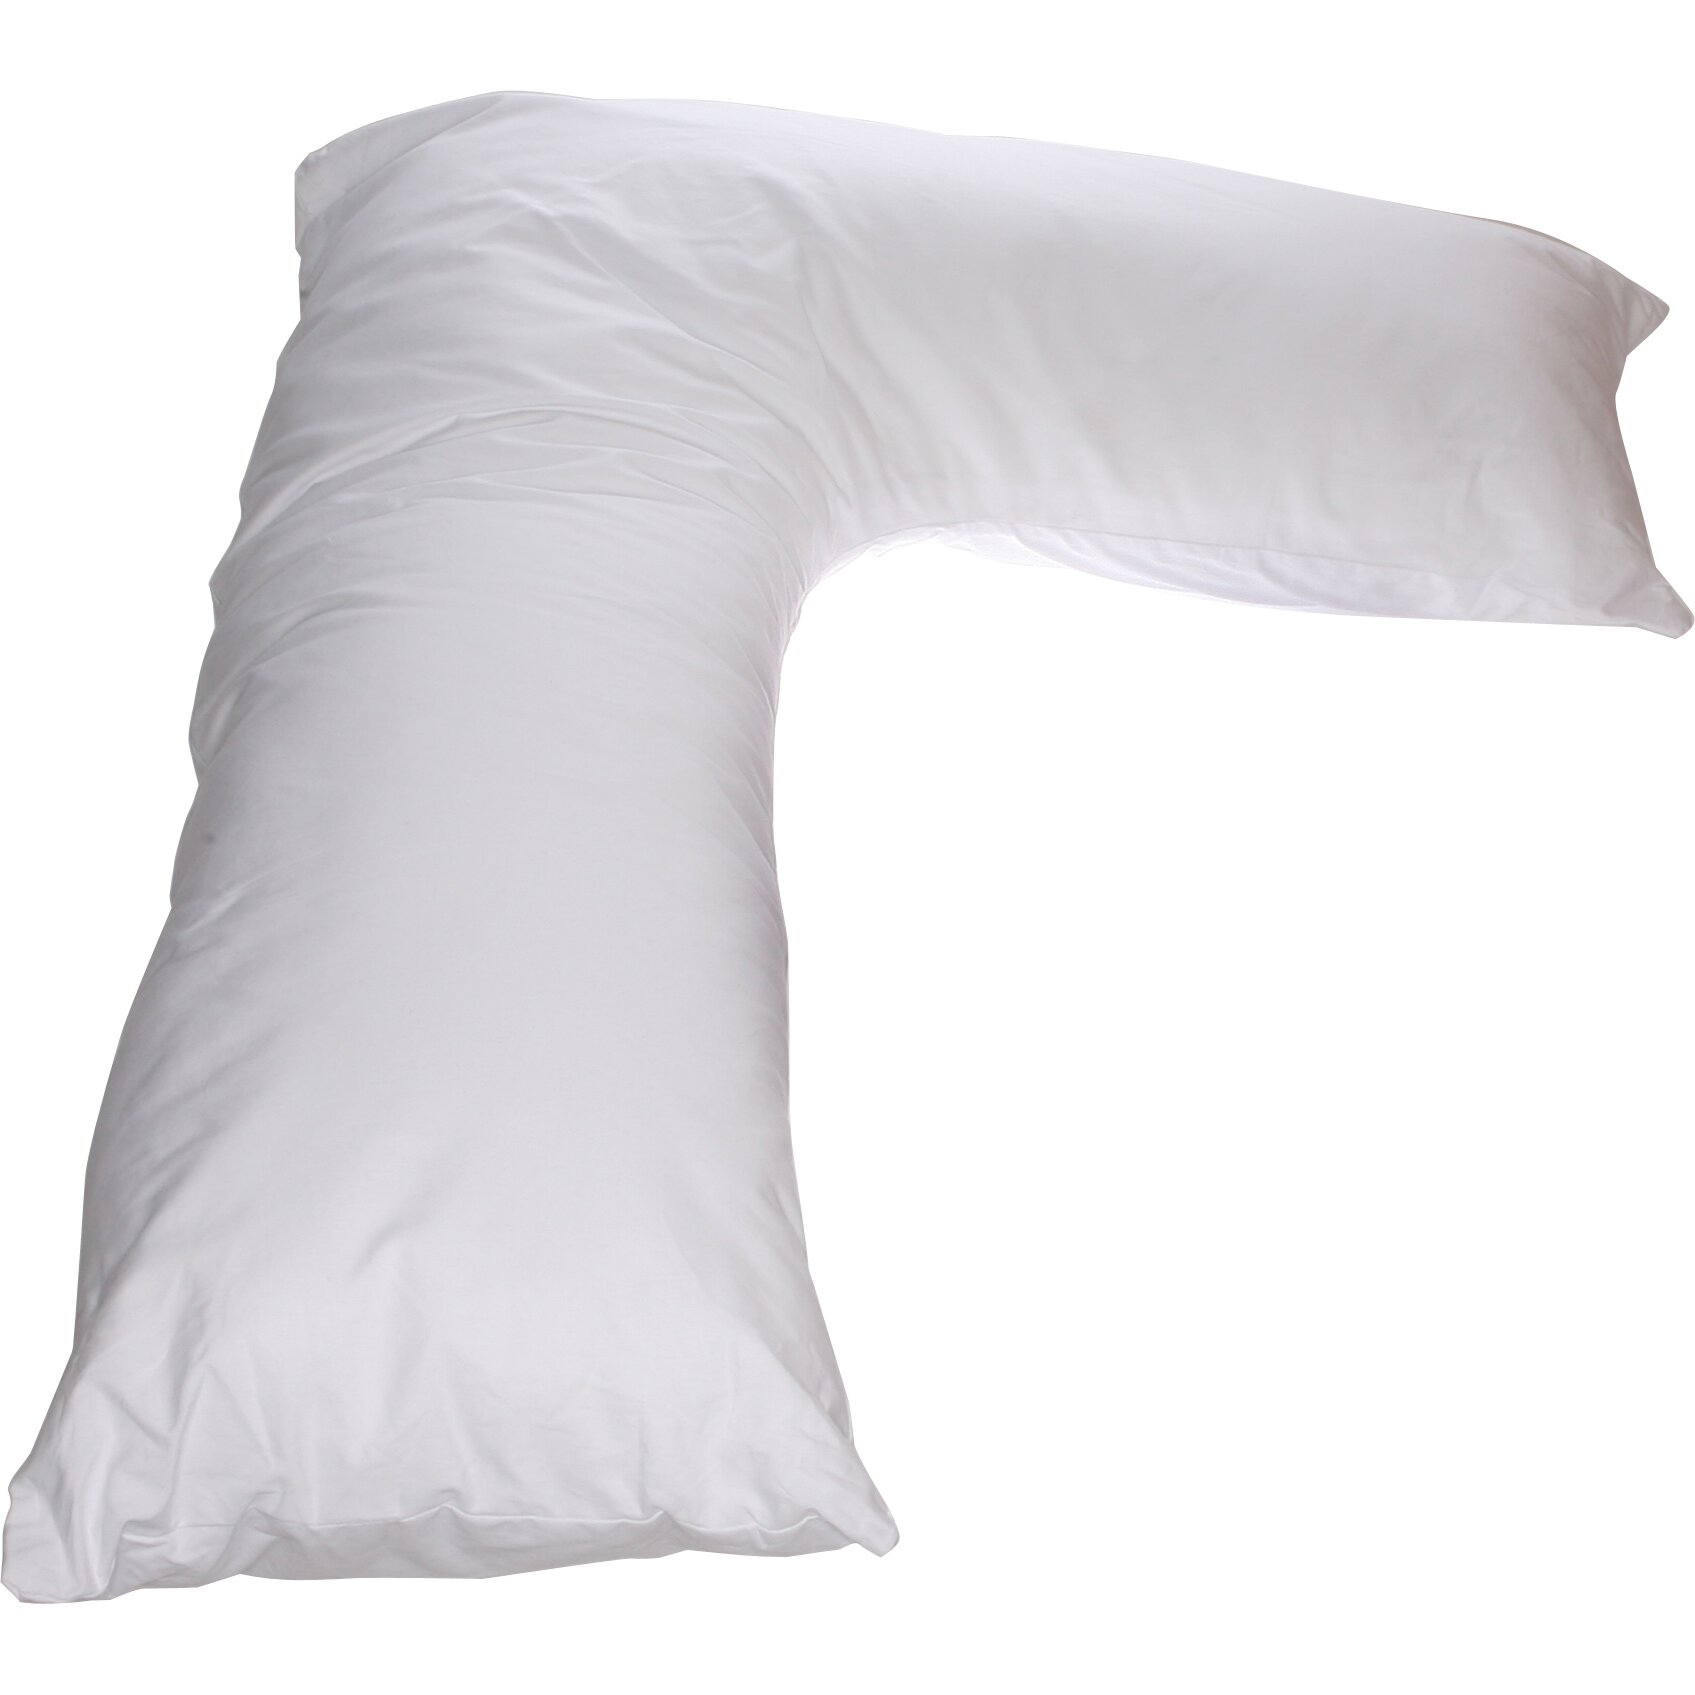 Deluxe comfort sleeper body cotton bed rest pillow for Bed pillows reviews